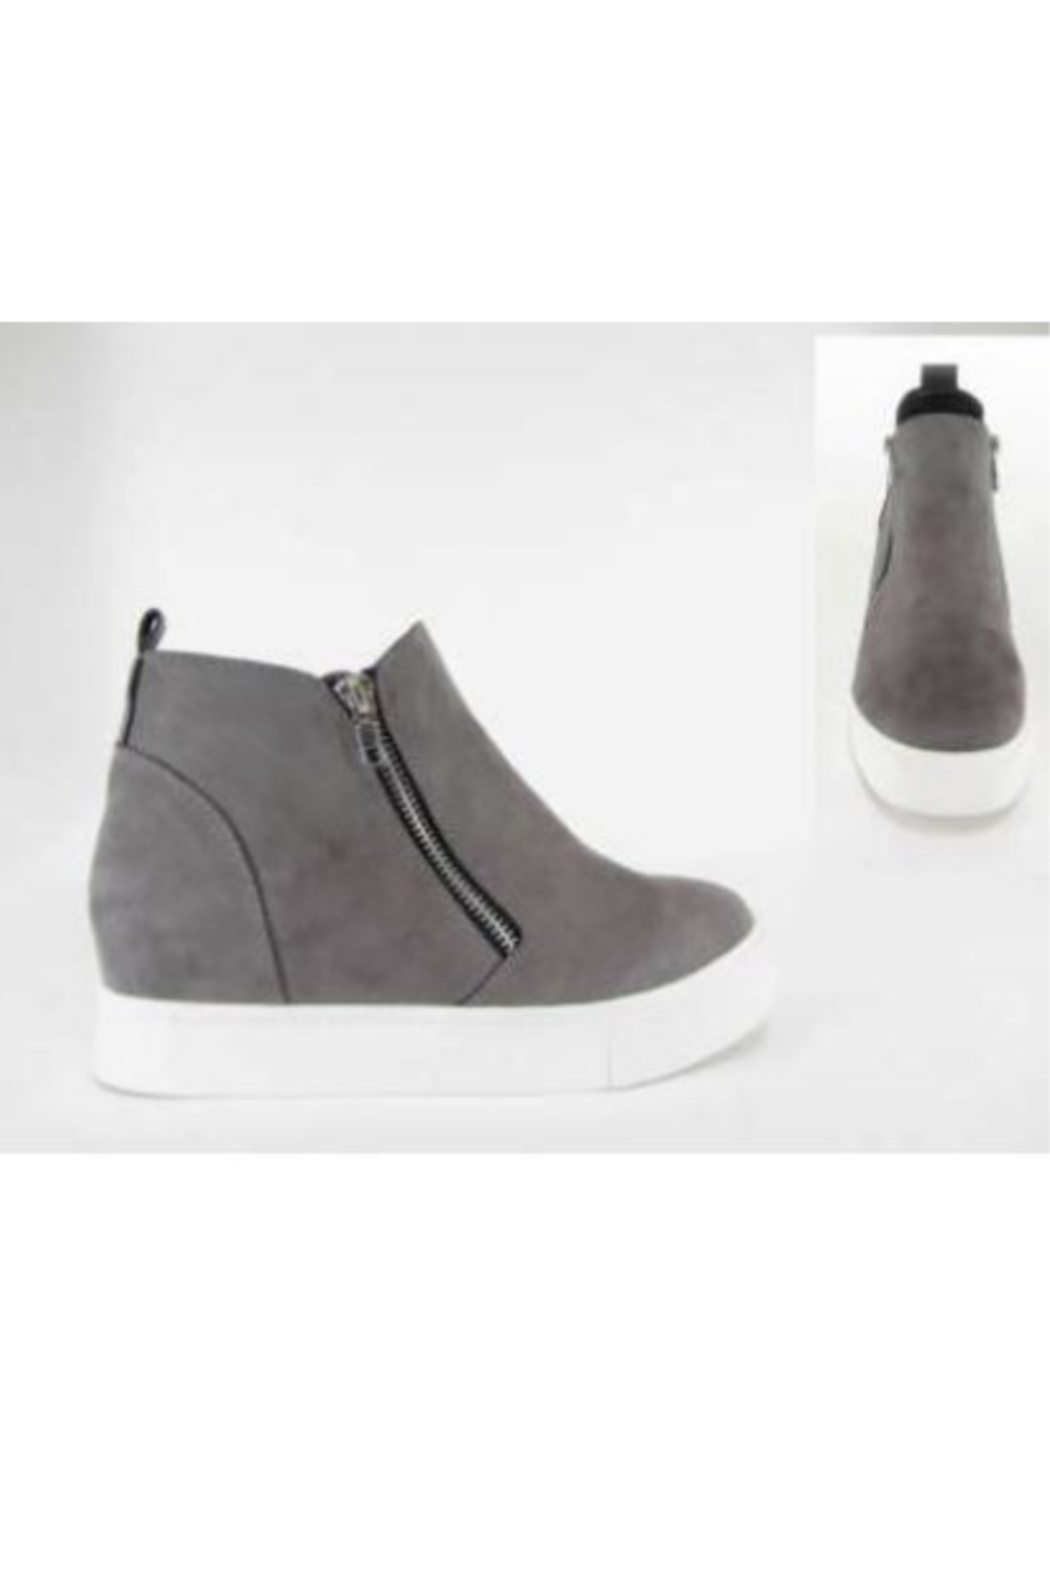 Lyn -Maree's Grey Wedge Sneaks - Main Image